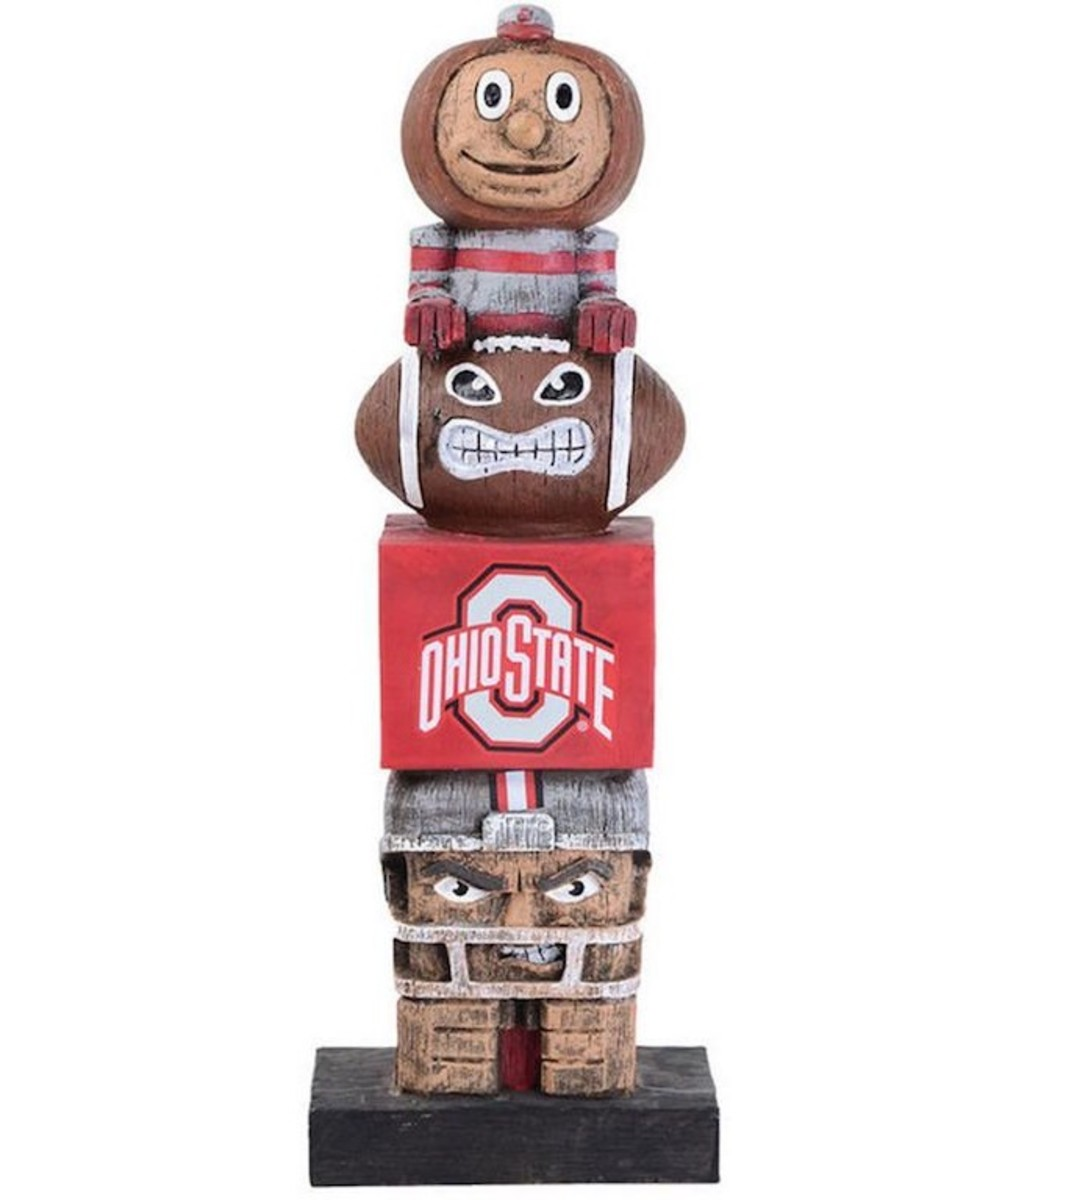 The Ohio State University Buckeyes totem pole for sale in many sports gift shops.